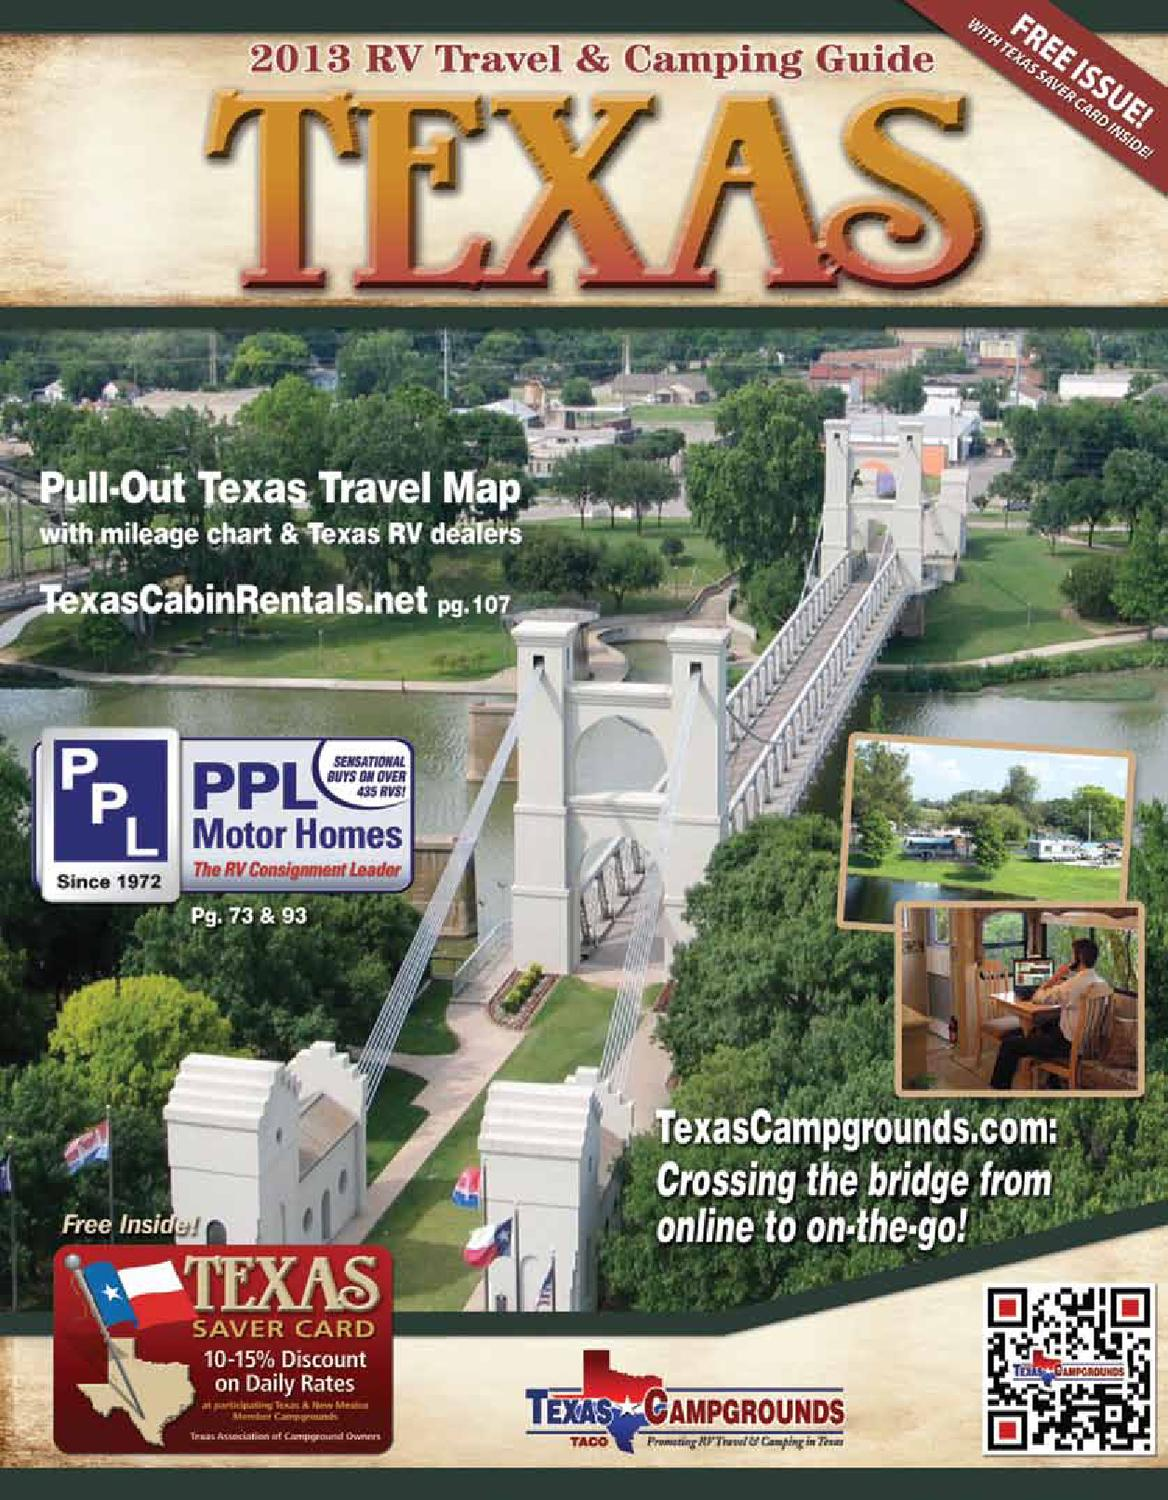 2013 Texas RV Travel Camping Guide By AGS Advertising